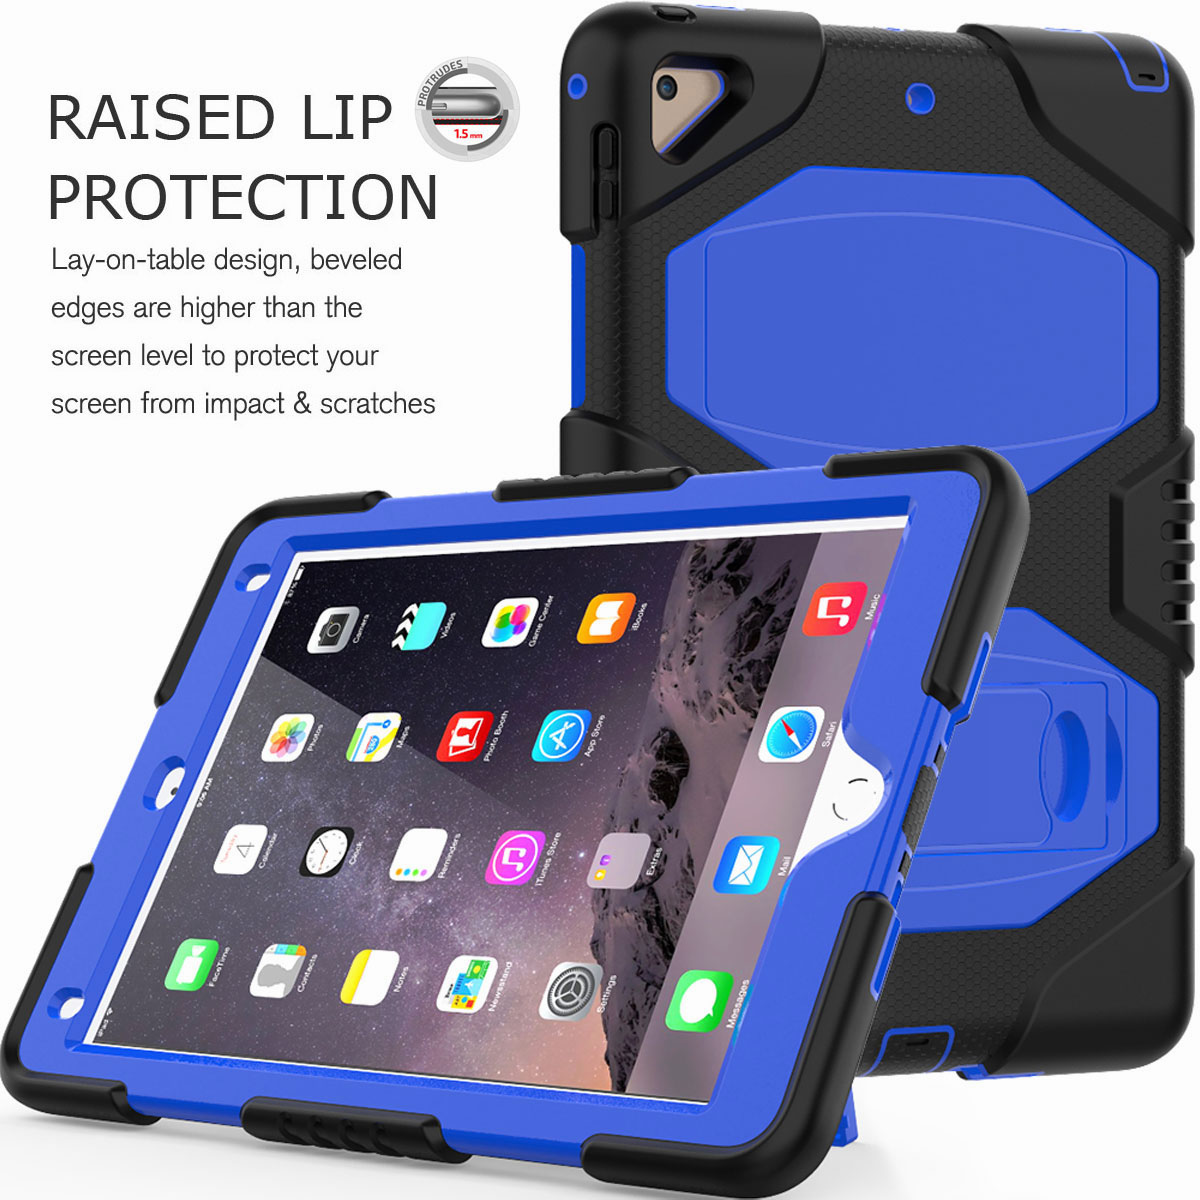 Hybrid-Rubber-Heavy-Duty-Shockproof-Case-Cover-For-iPad-9-7-6th-Generation-2018 thumbnail 27